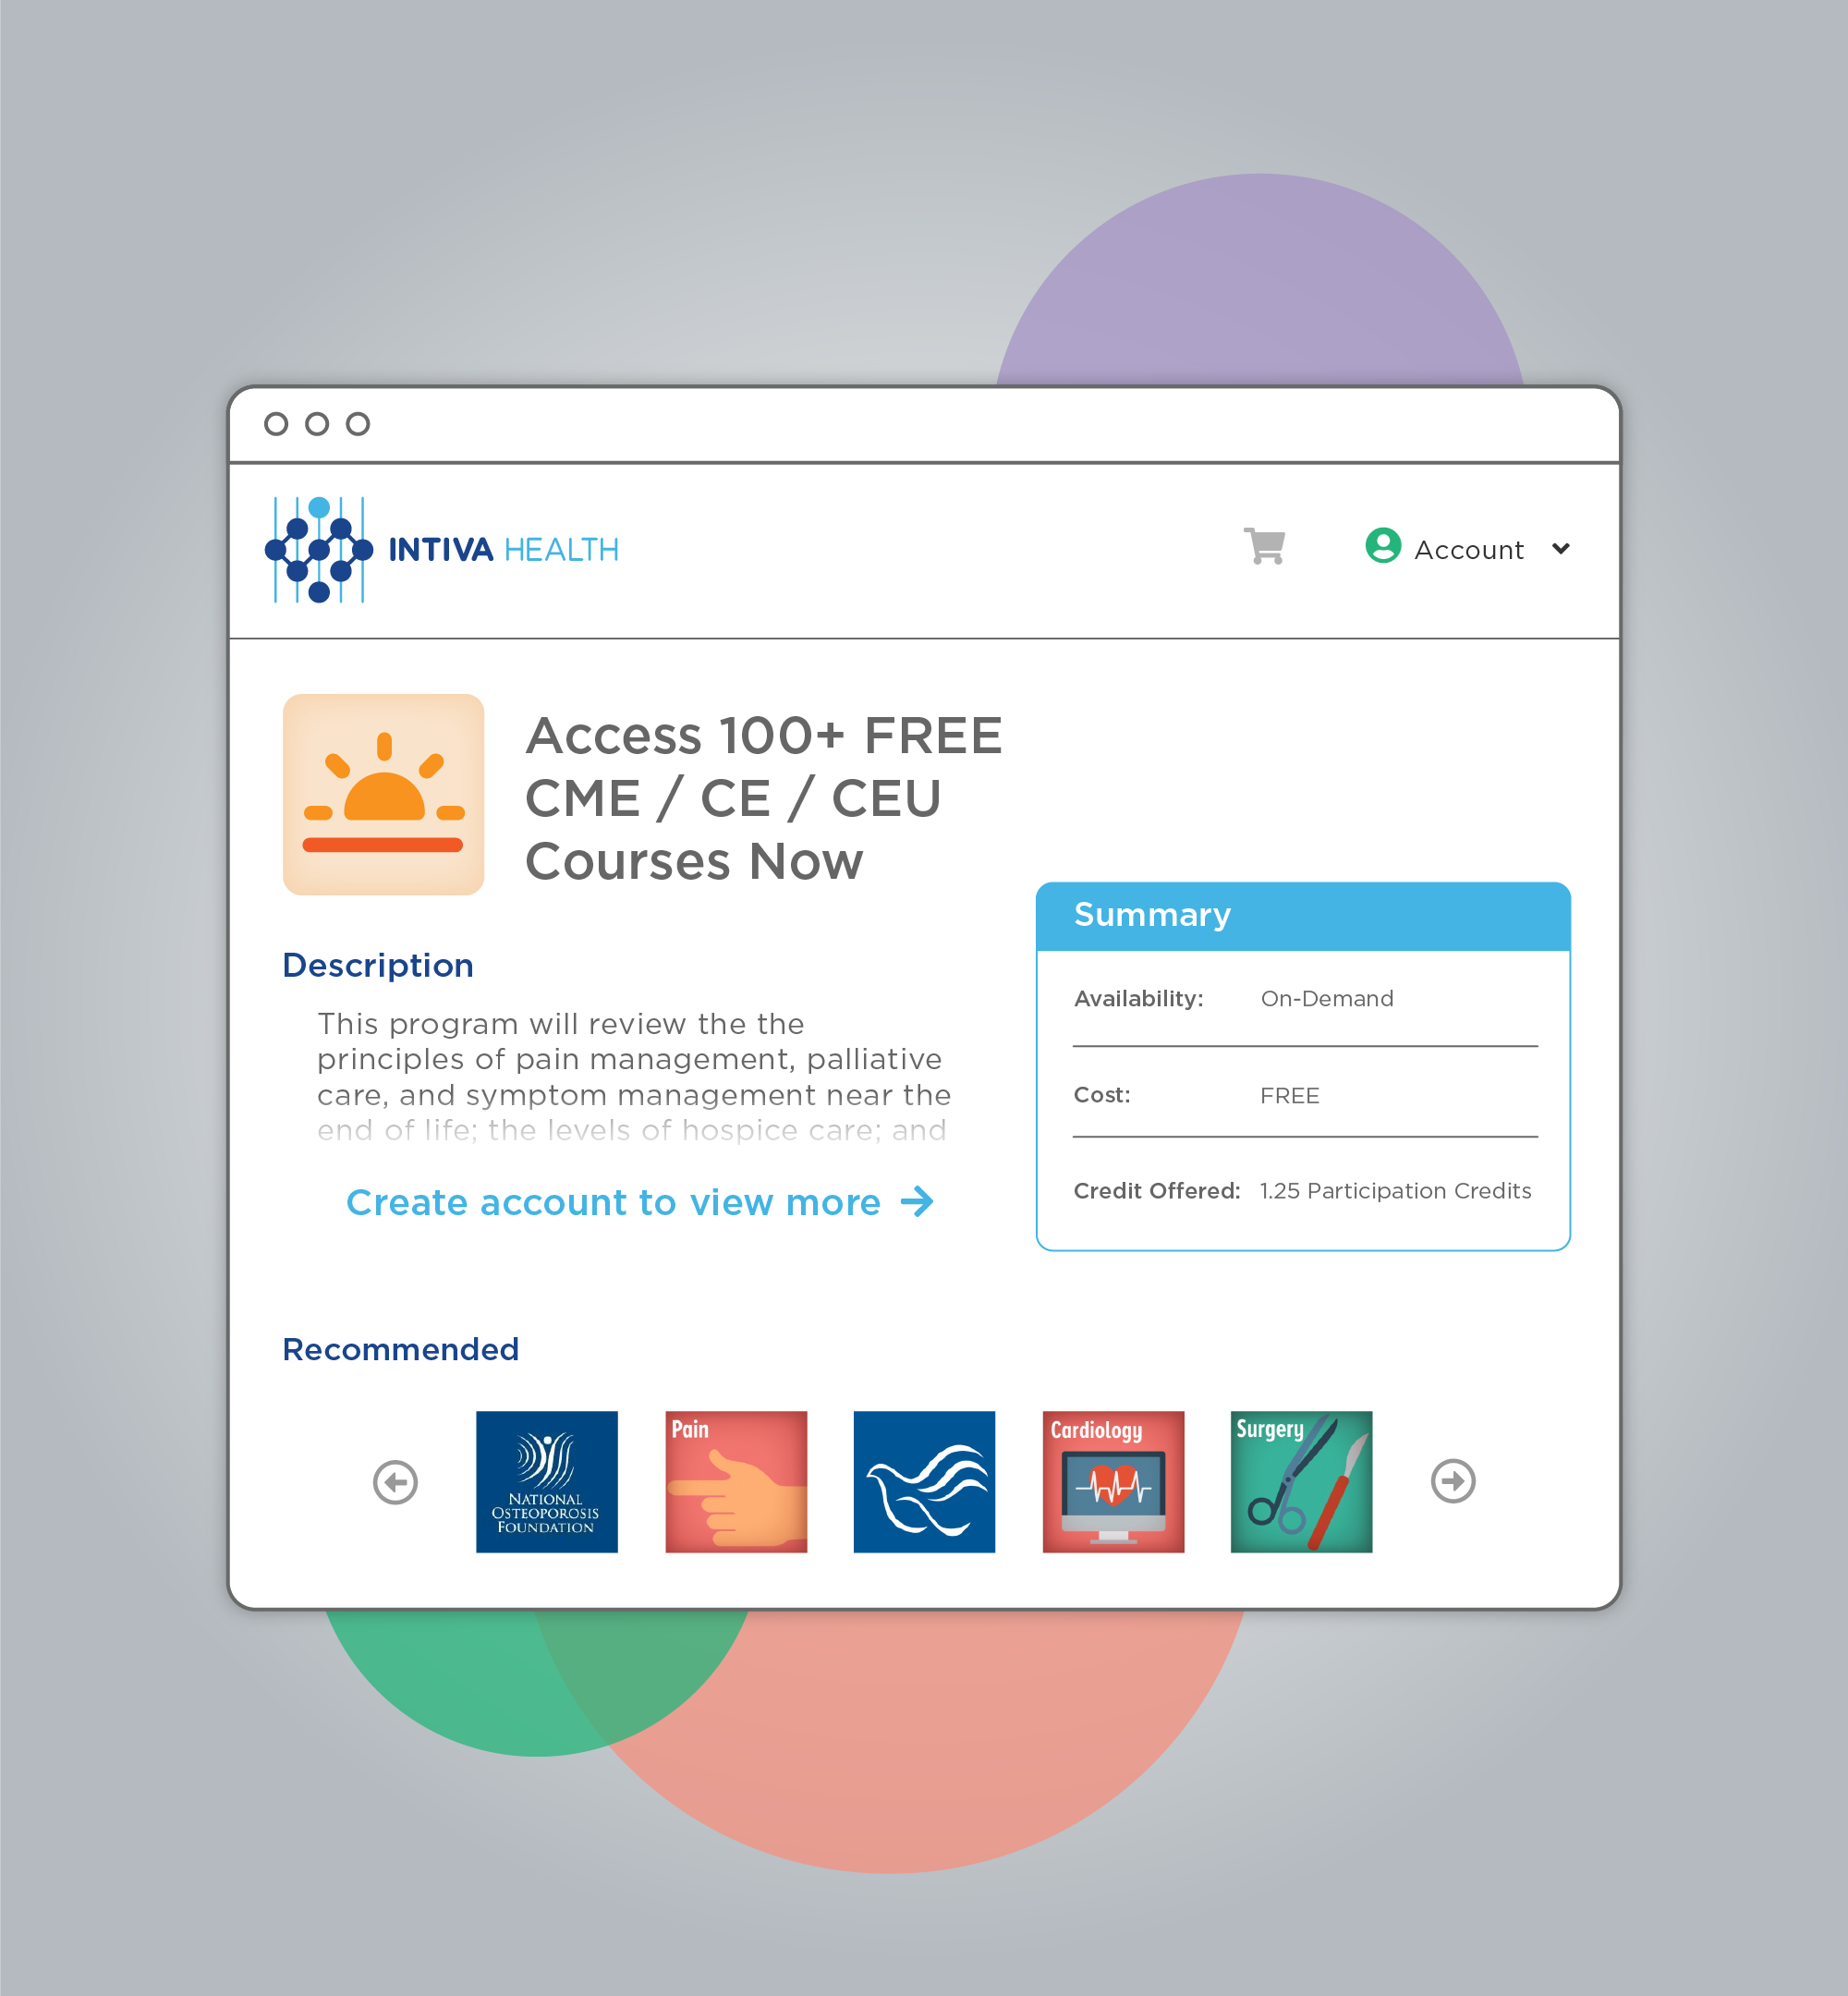 Earn CME / CE / CEU credits for FREE on the go